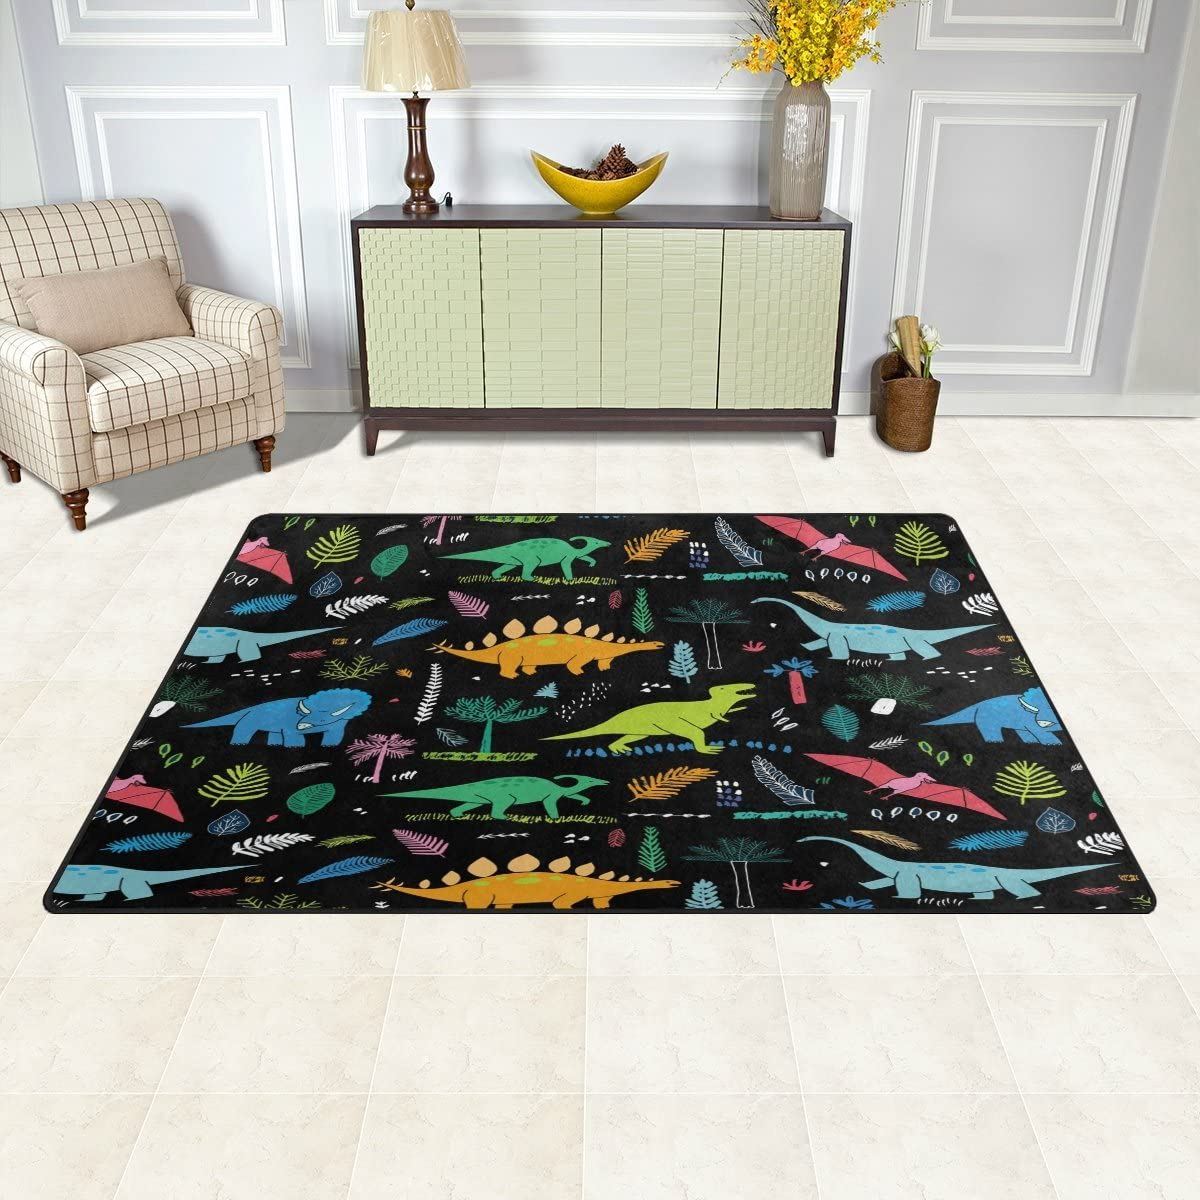 WOZO Funny Dinosaur Palm Leaf Area Rug Rugs Non-Slip Floor Mat Doormats Living Dining Room Bedroom Dorm 60 x 39 inches inches Home Decor